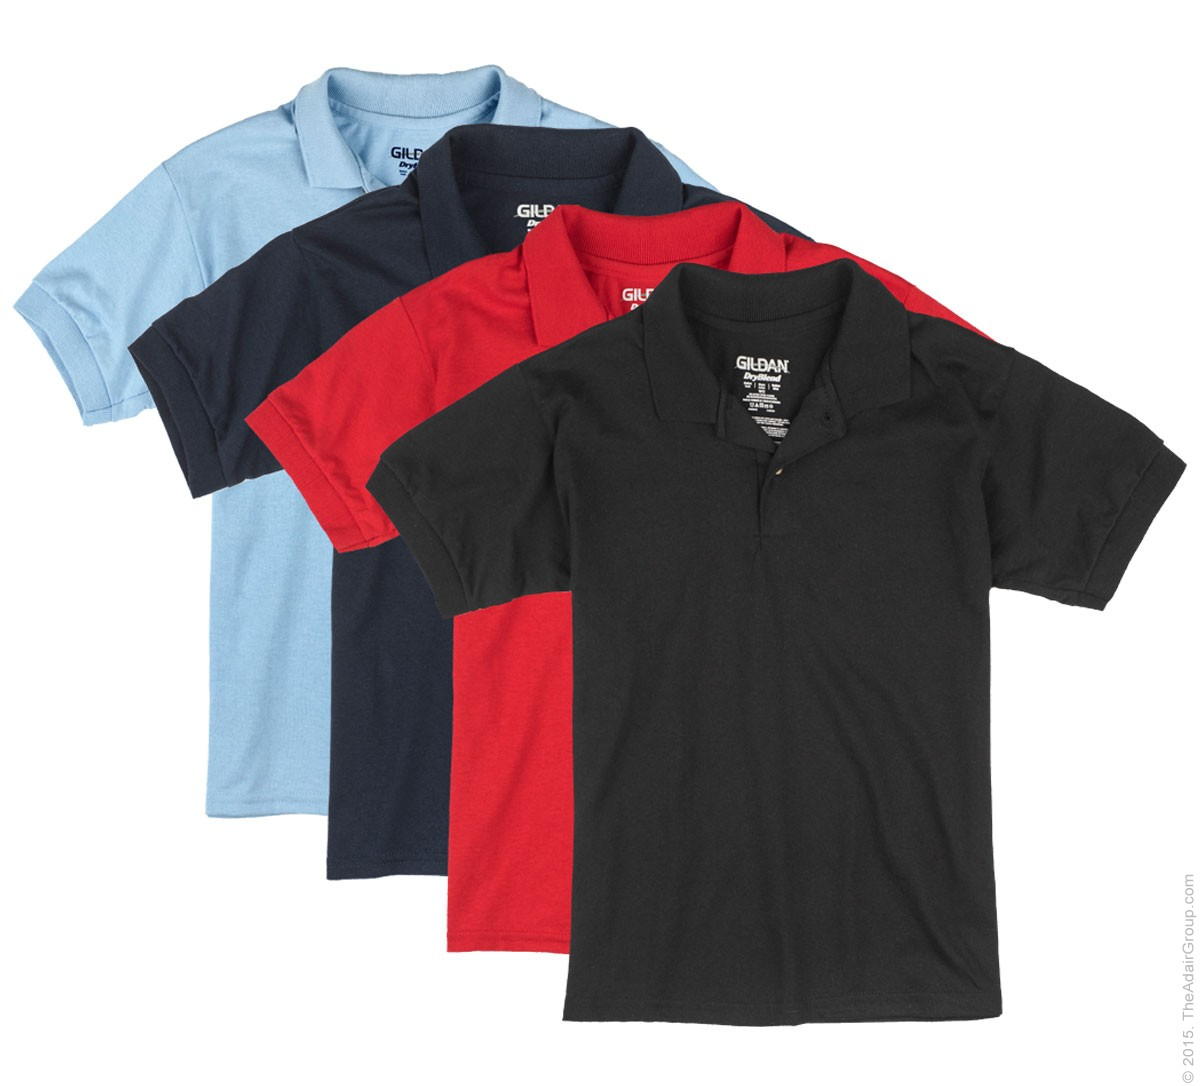 Assorted Color Kids Polo Shirts The Adair Group